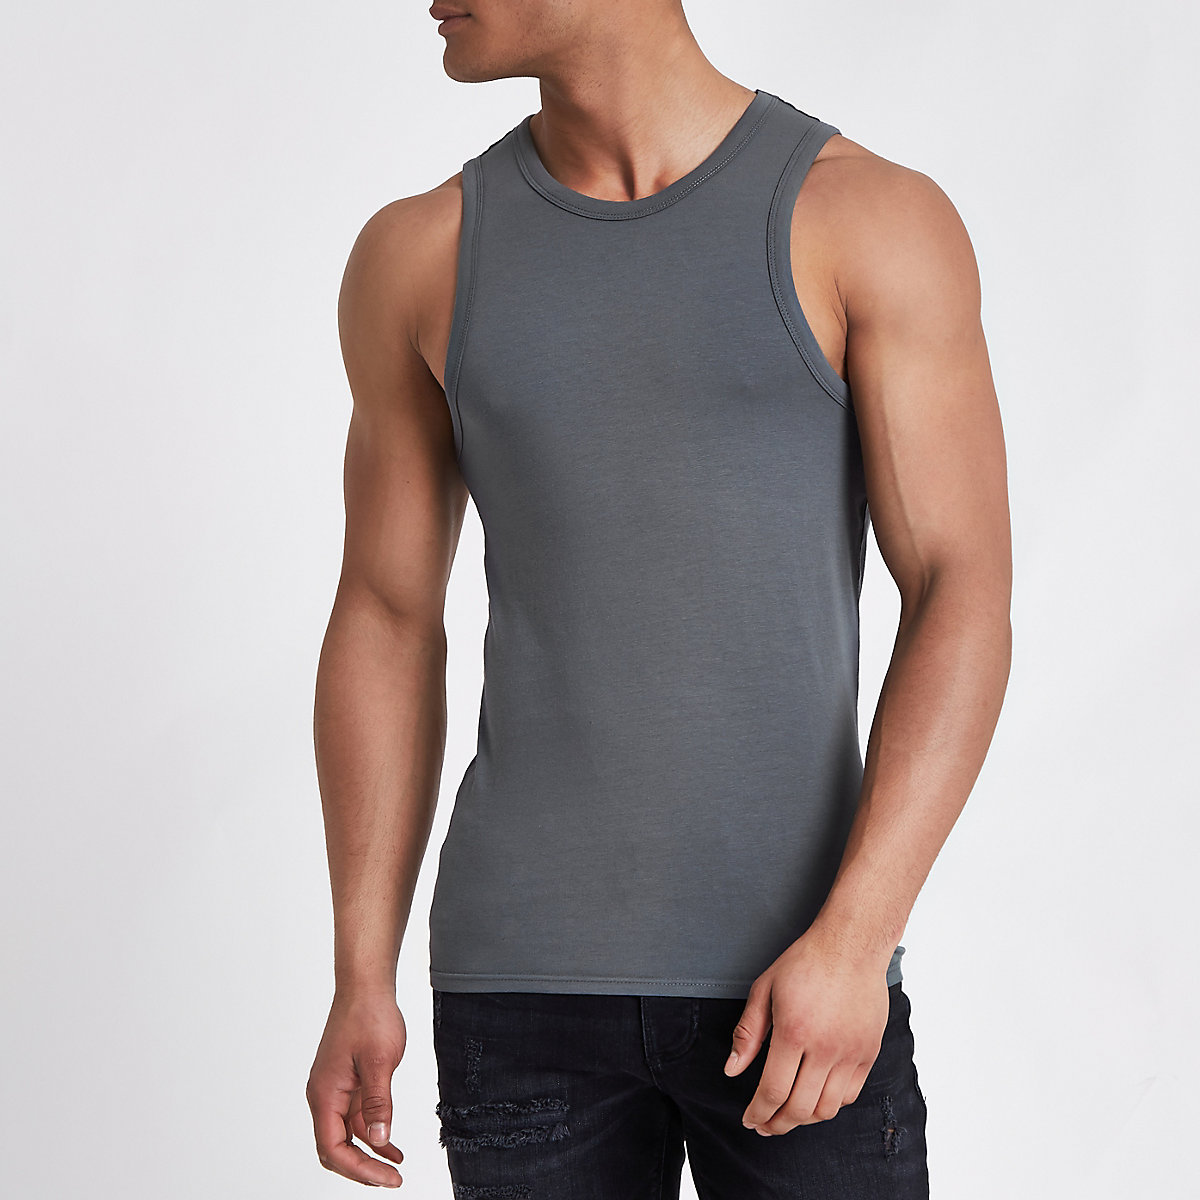 Dark grey muscle fit vest top